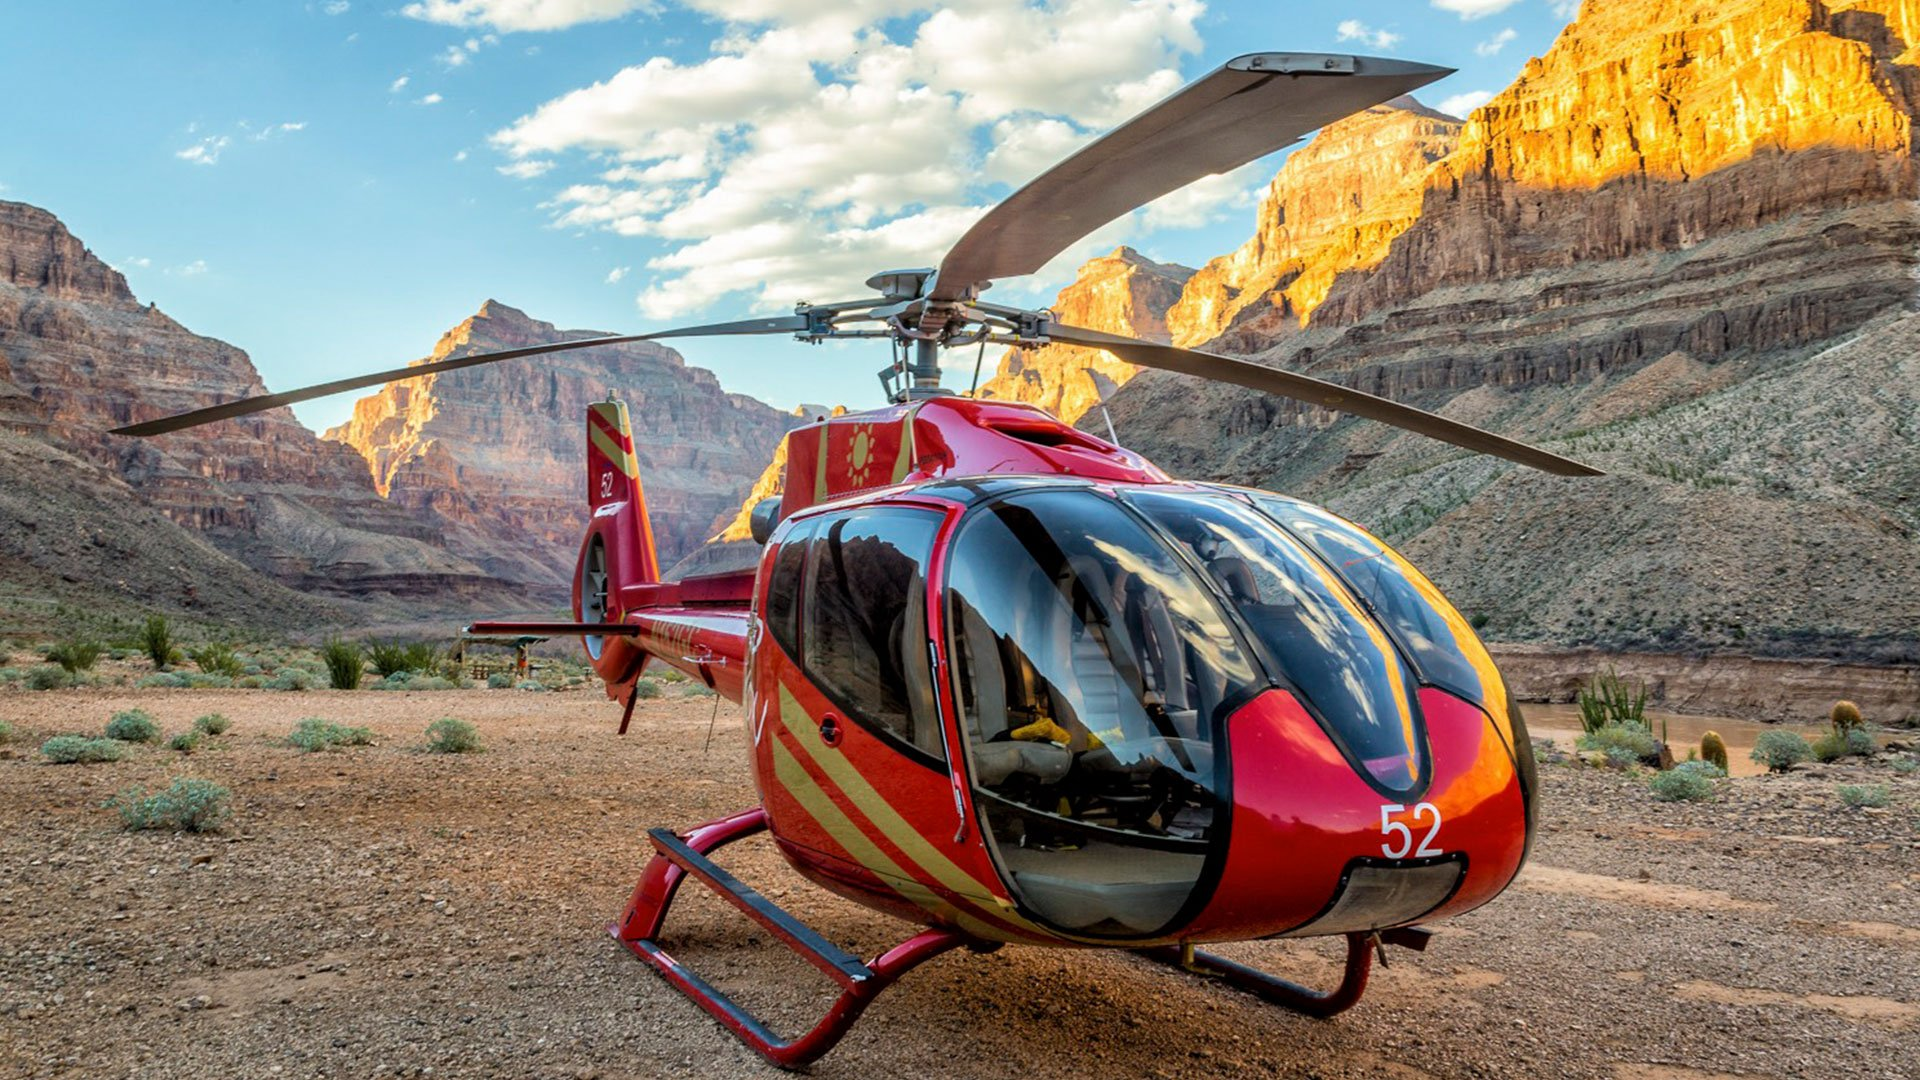 Red EC-130 helicopter landed at the bottom of Grand Canyon West Rim